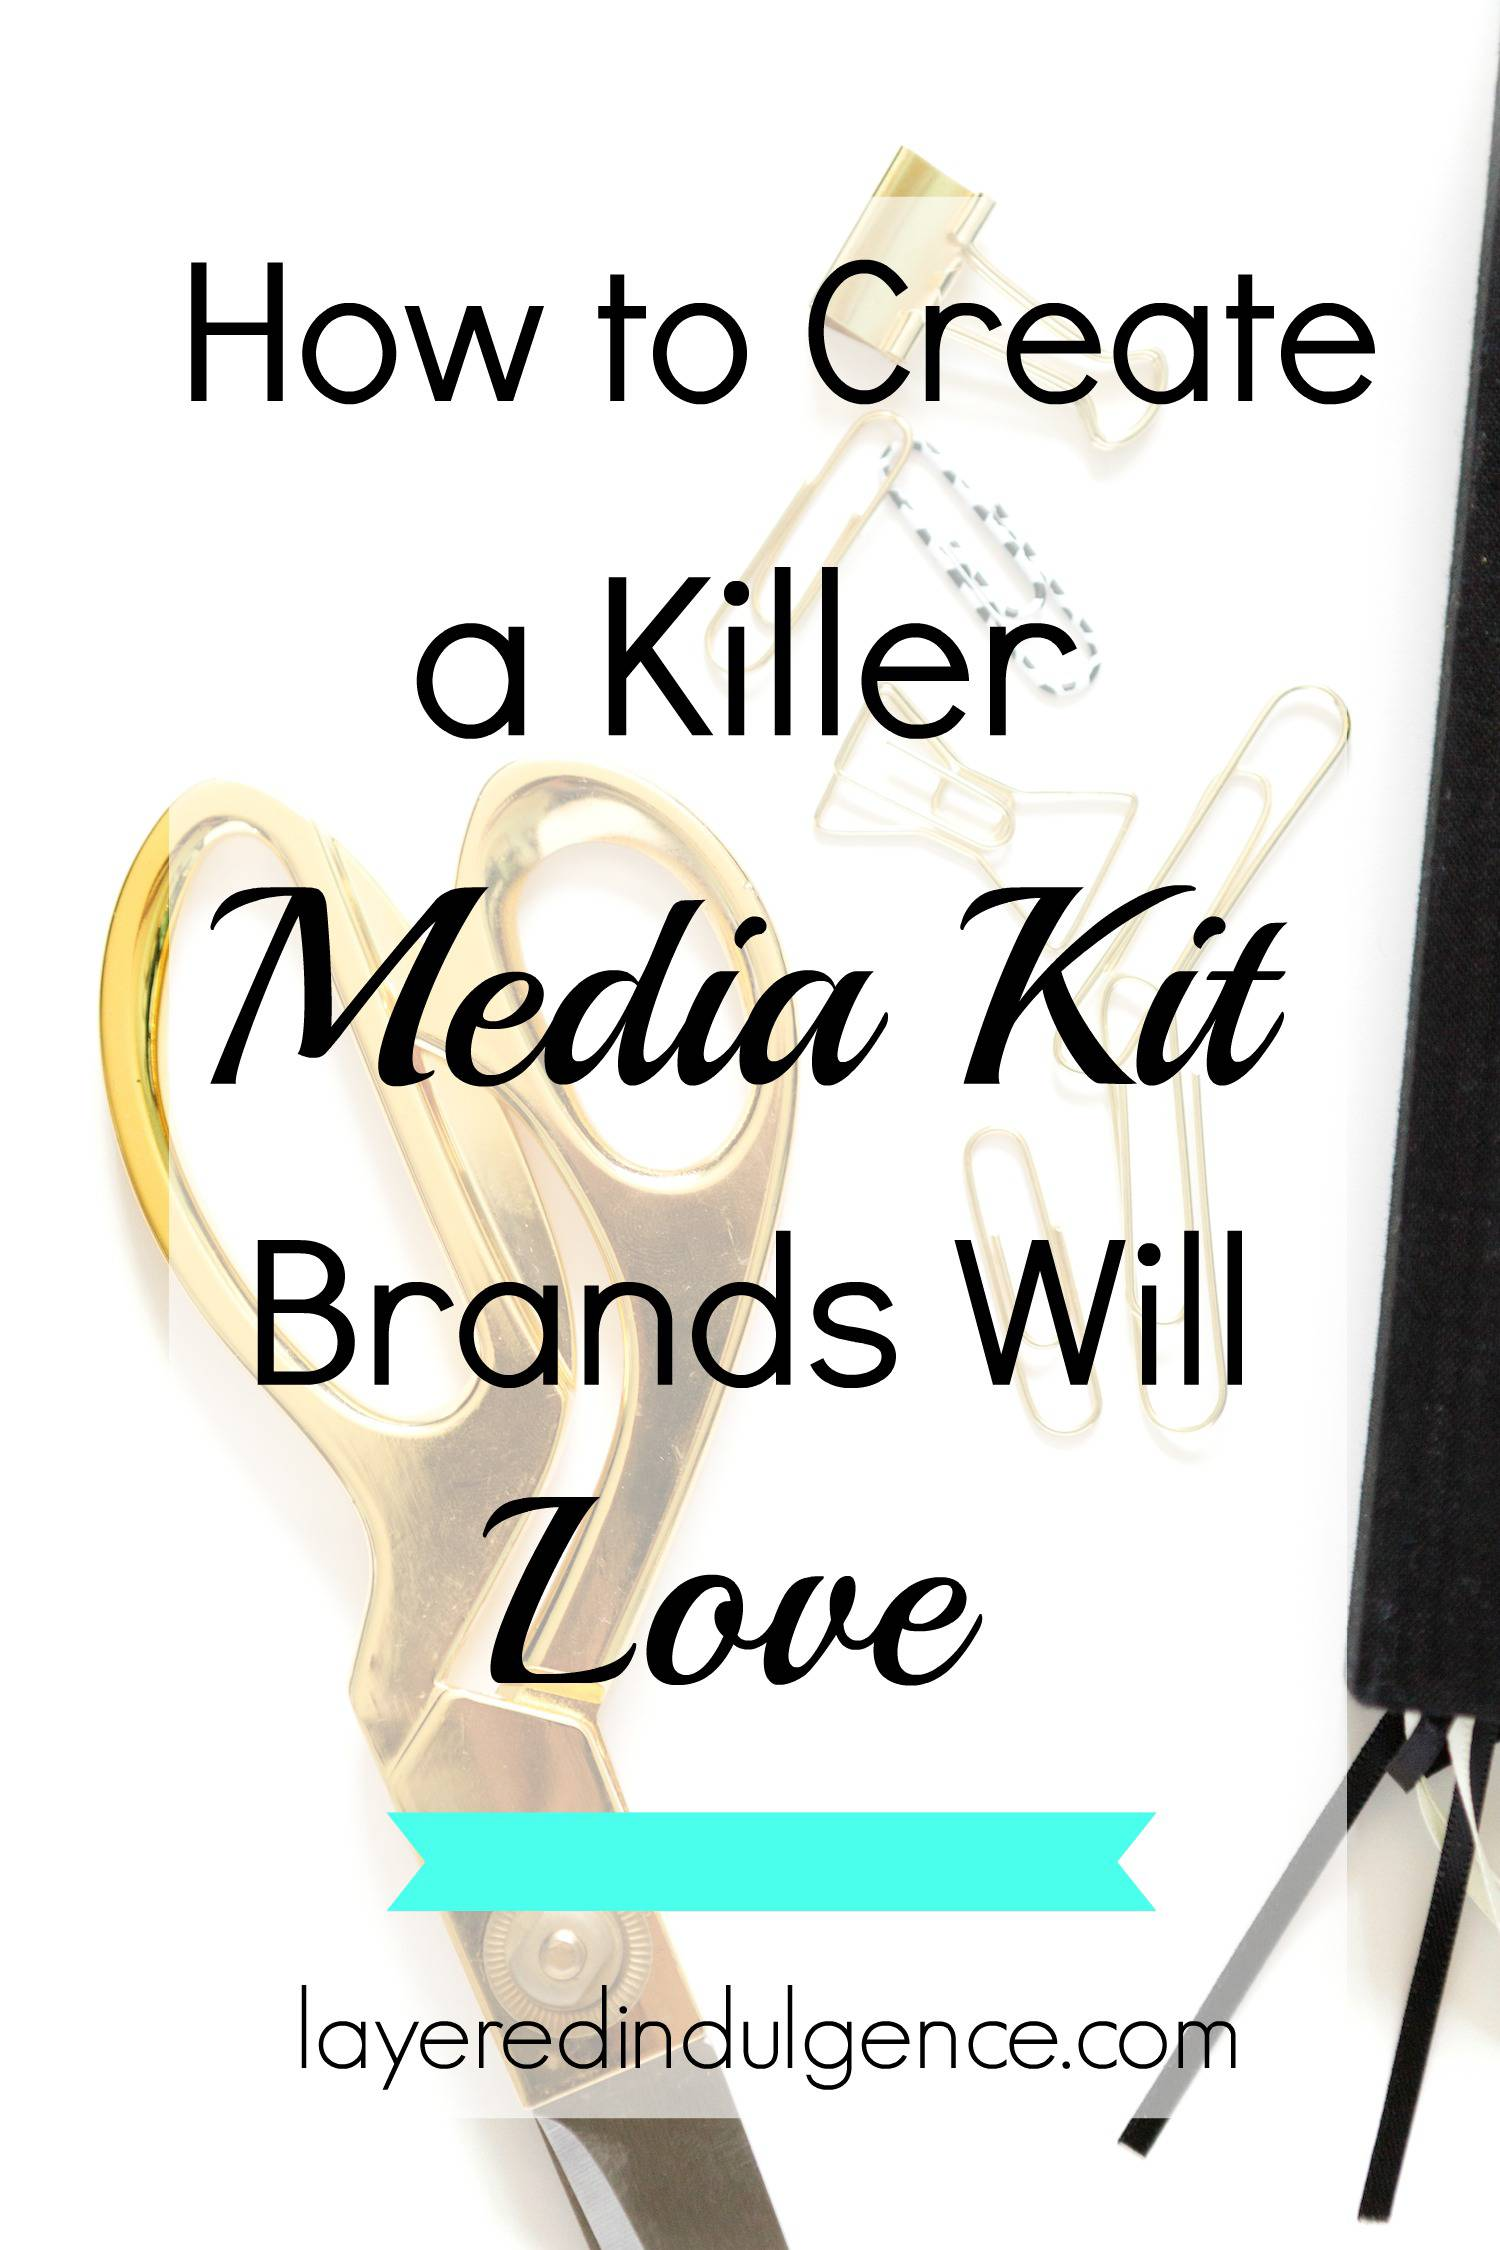 How to Create a Killer Media Kit That Brands Will Love: Are you a blogger who wants to work with brands, land sponsored posts, and make money blogging? Then you need a media kit! I've rounded up examples, templates, and ideas for how to make a media kit that will appeal to your dream brands as a blogger! Click to read the post or save this pin for later!